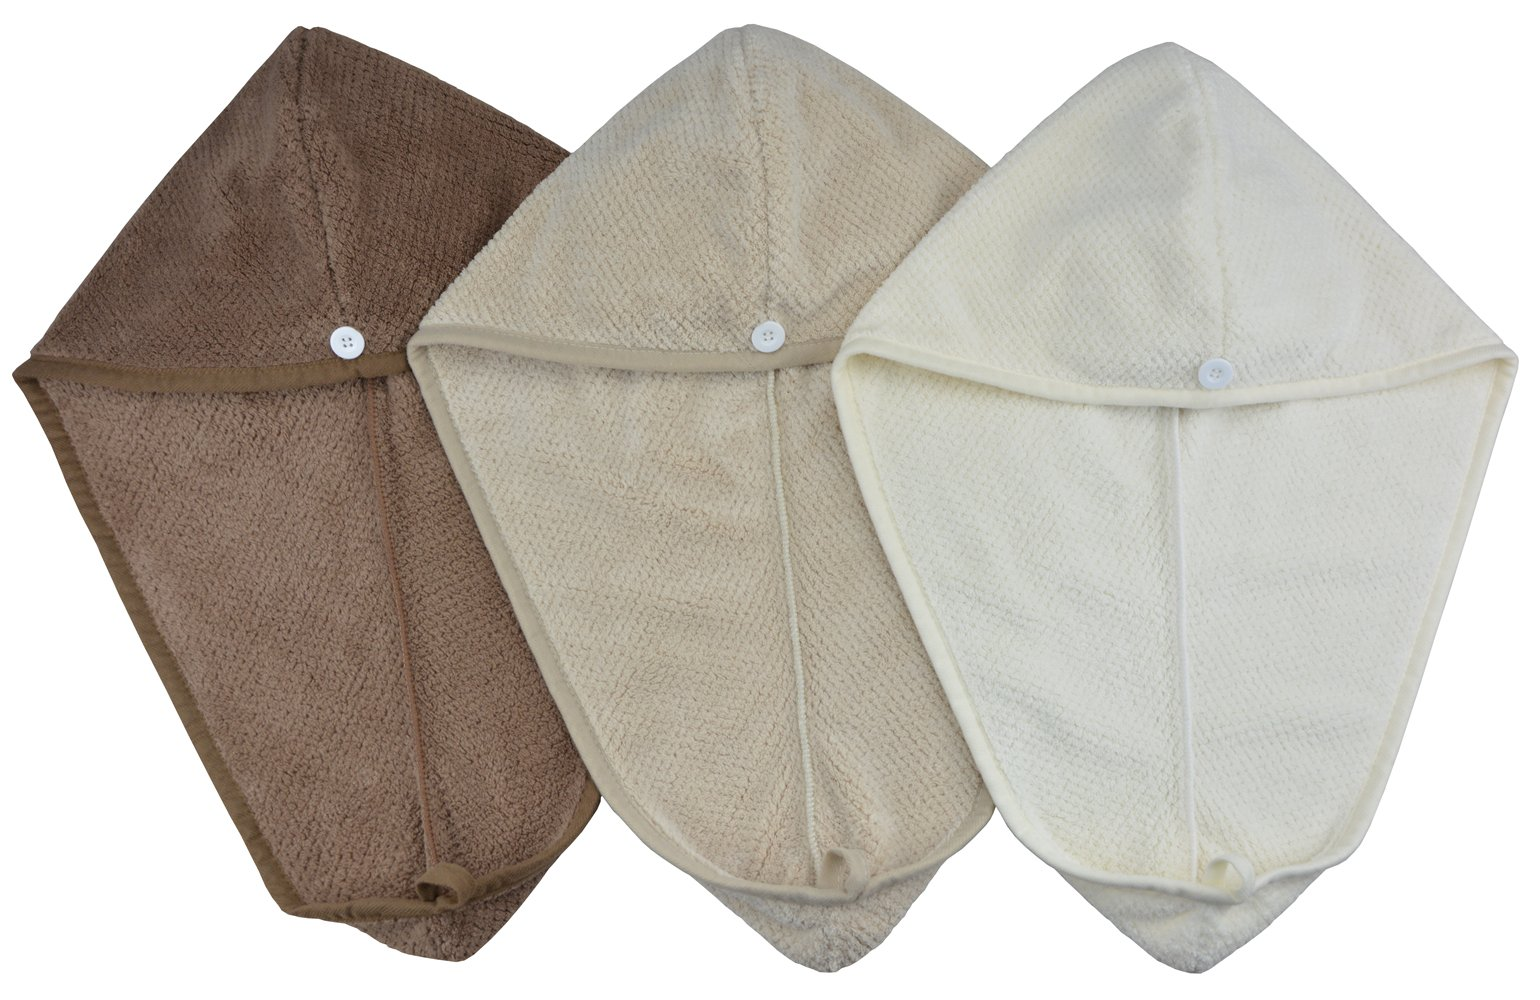 Mayouth Microfiber Hair Drying Towels for Long Hair Absorbent Soft Hair Turban Wraps for Women & Girls (Brown+Khaki+Off White 3-pack)